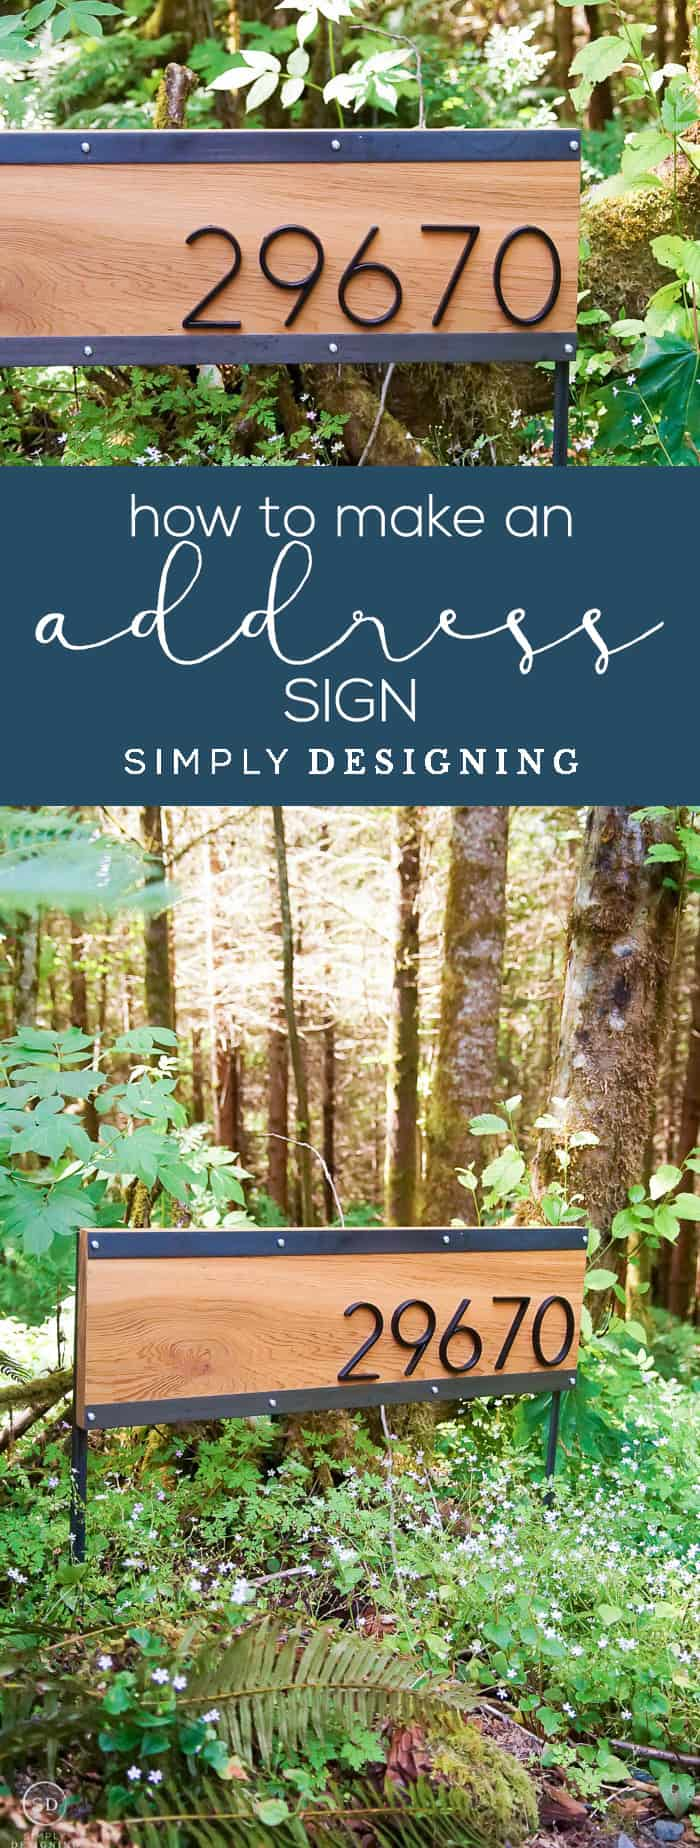 Learn how to make an address sign that is beautiful and modern in only a few easy steps so that you can create a unique lasting first impression